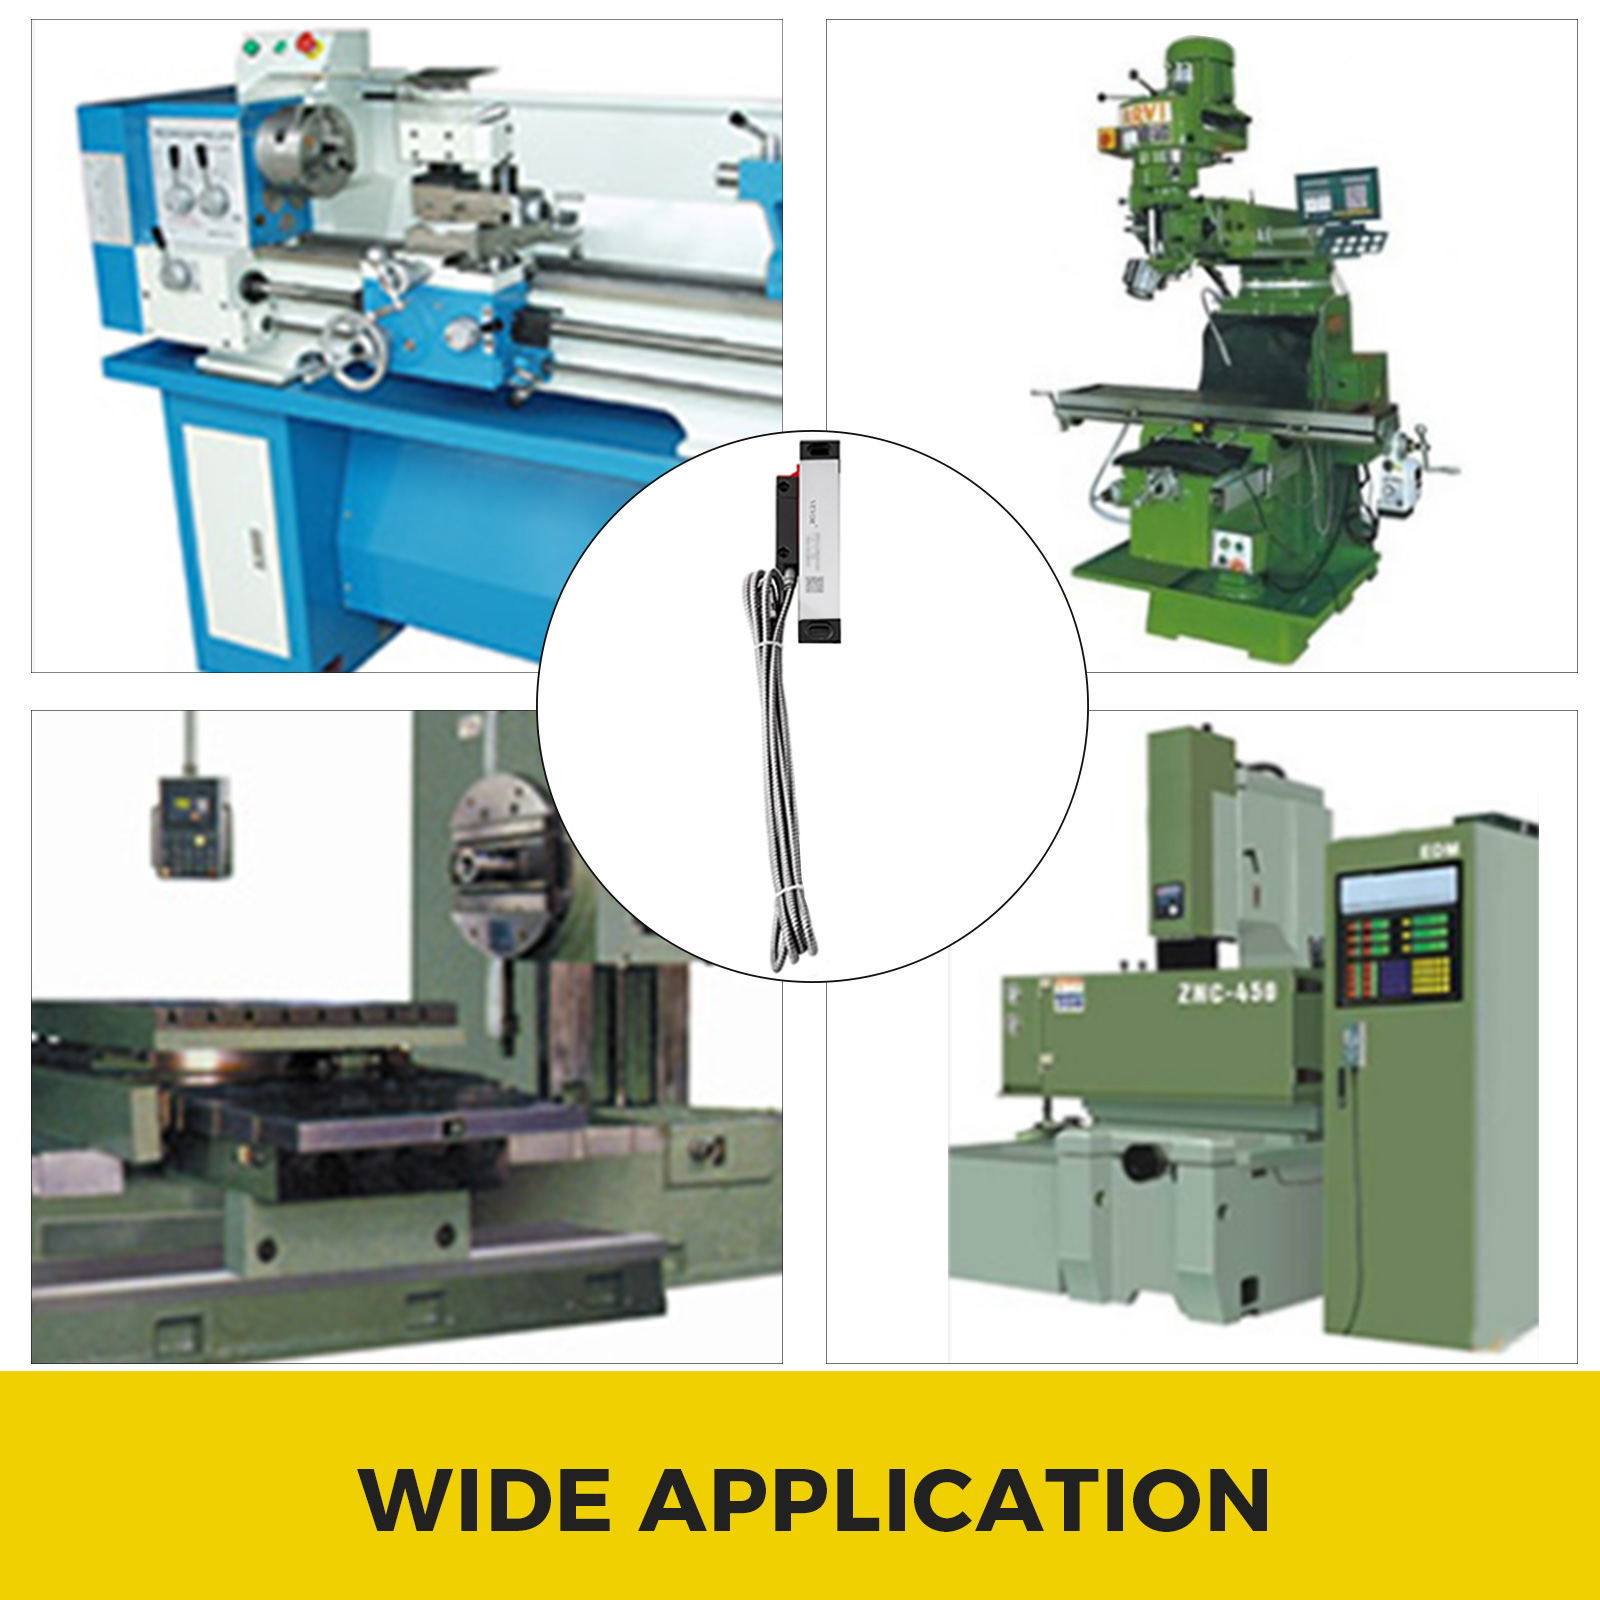 2-3-Axis-Digital-Readout-Linear-Scale-Double-Seal-5-Bearing-System-Grinding thumbnail 19